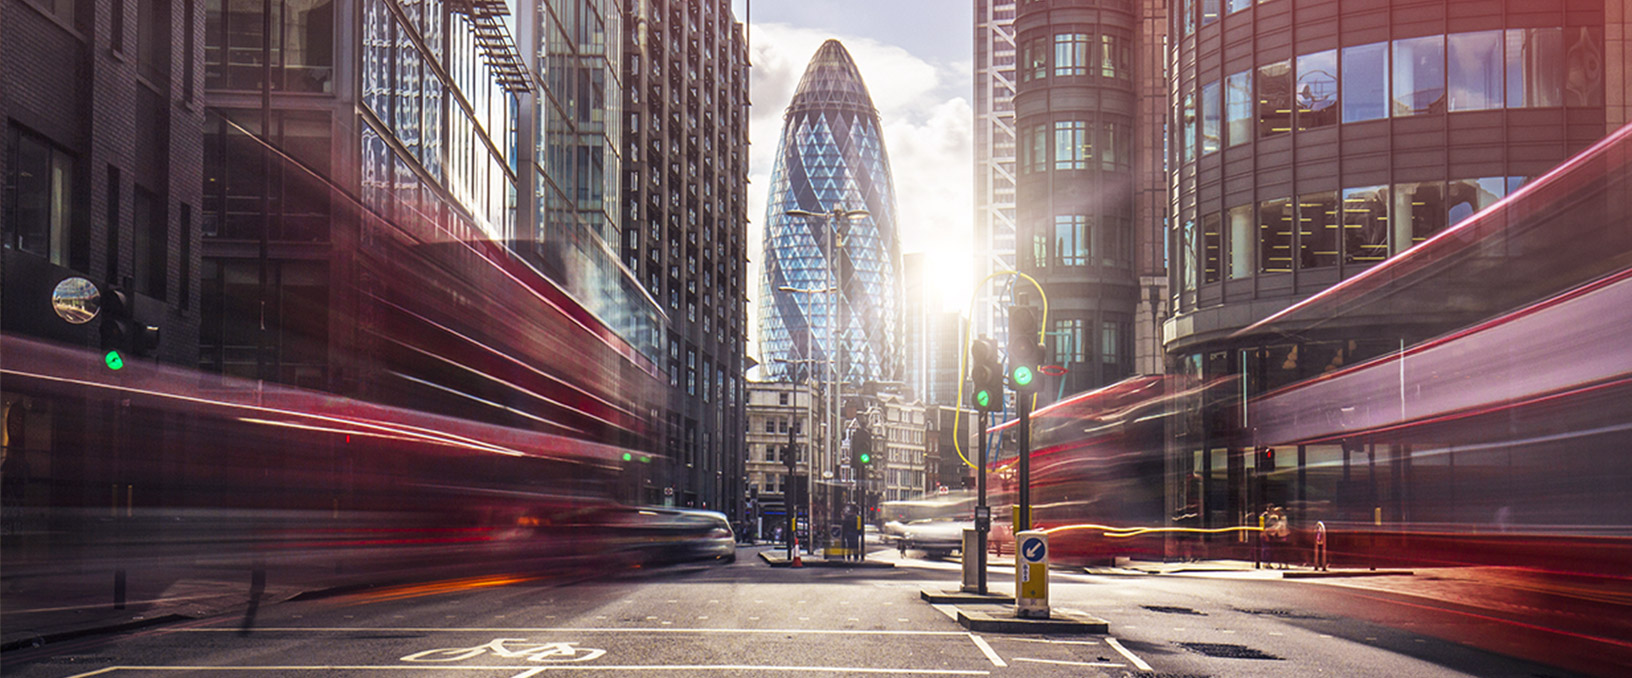 Complete-Prime-Residential-london